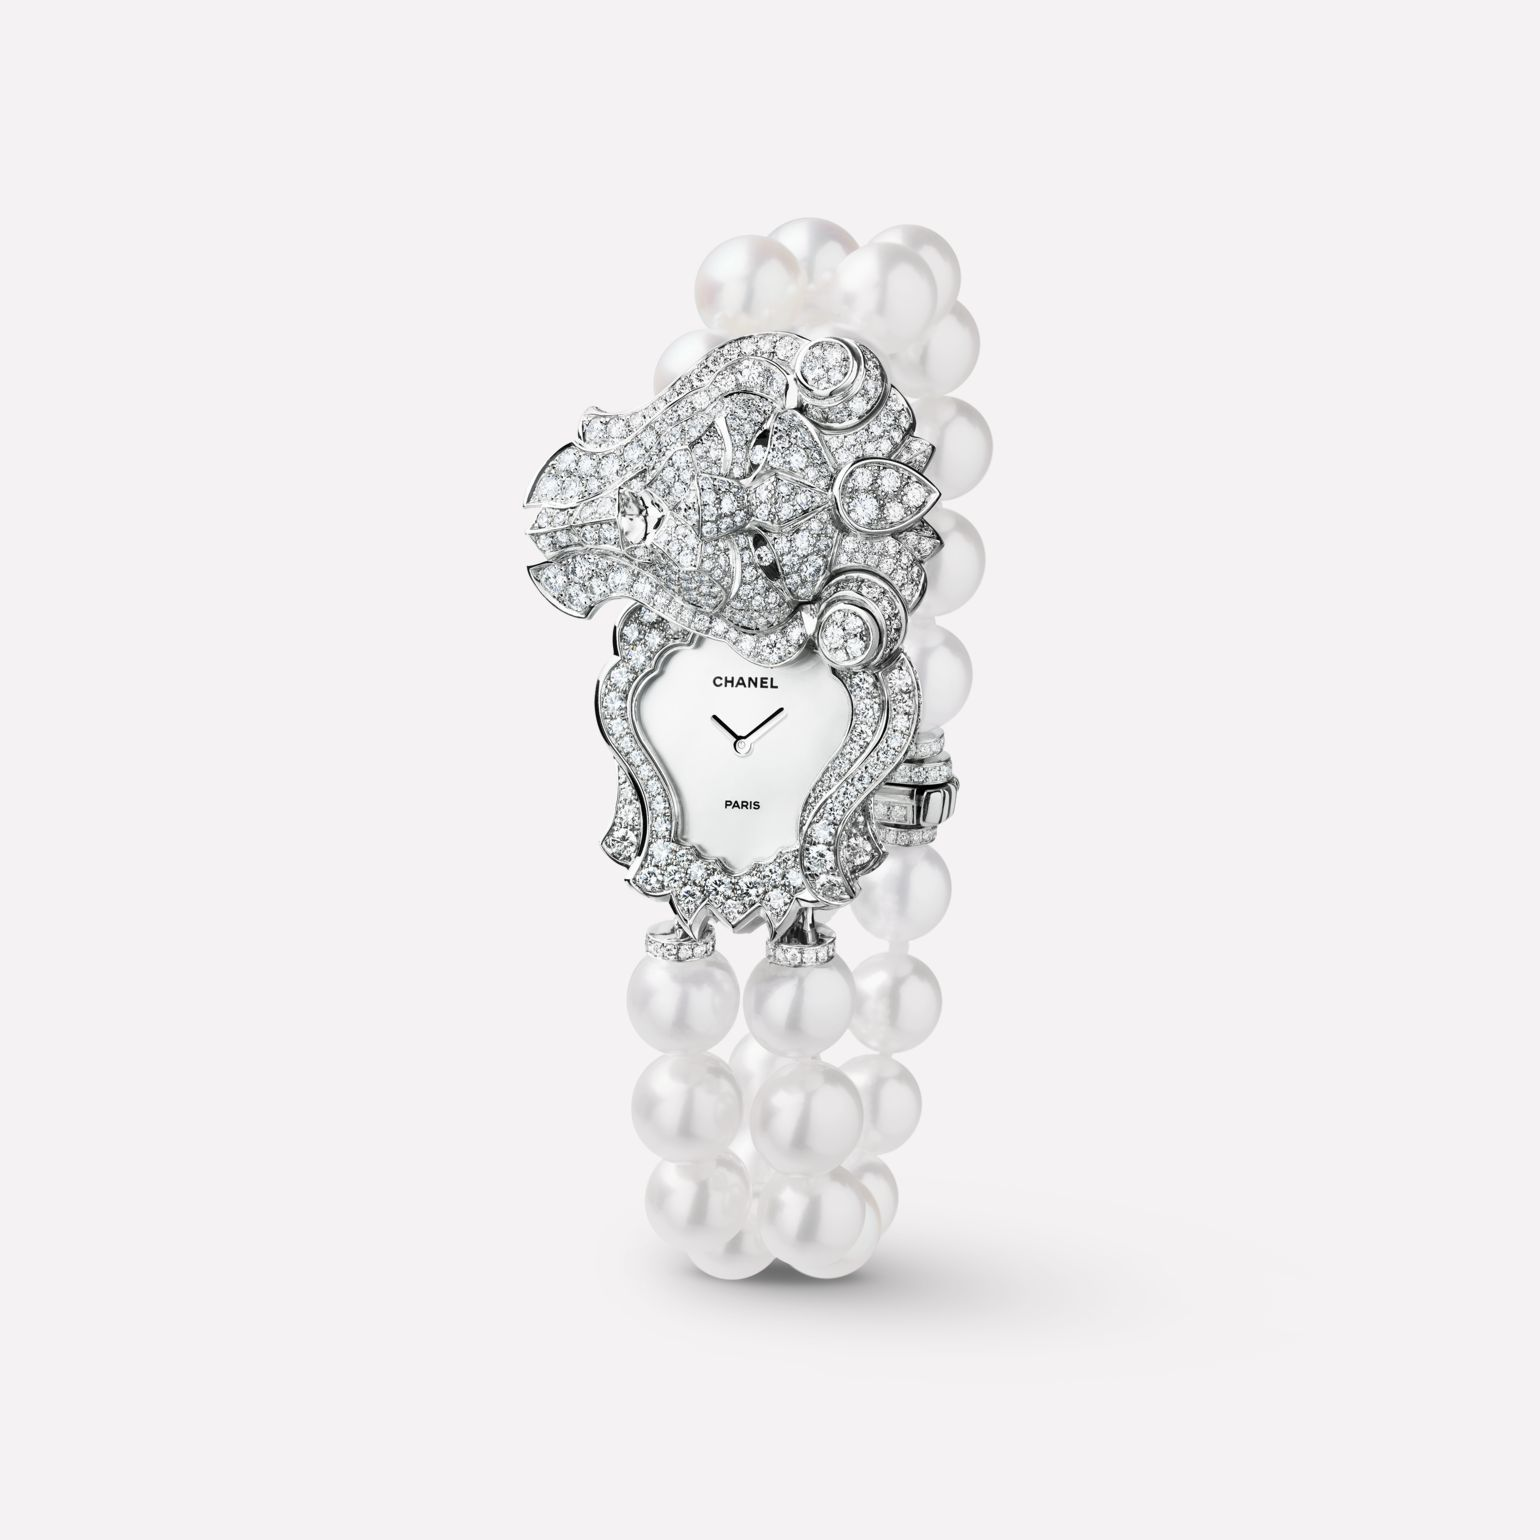 Sous le Signe du Lion Jewellery Watch Secret watch with lion motif in 18K white gold, diamonds and cultured pearls